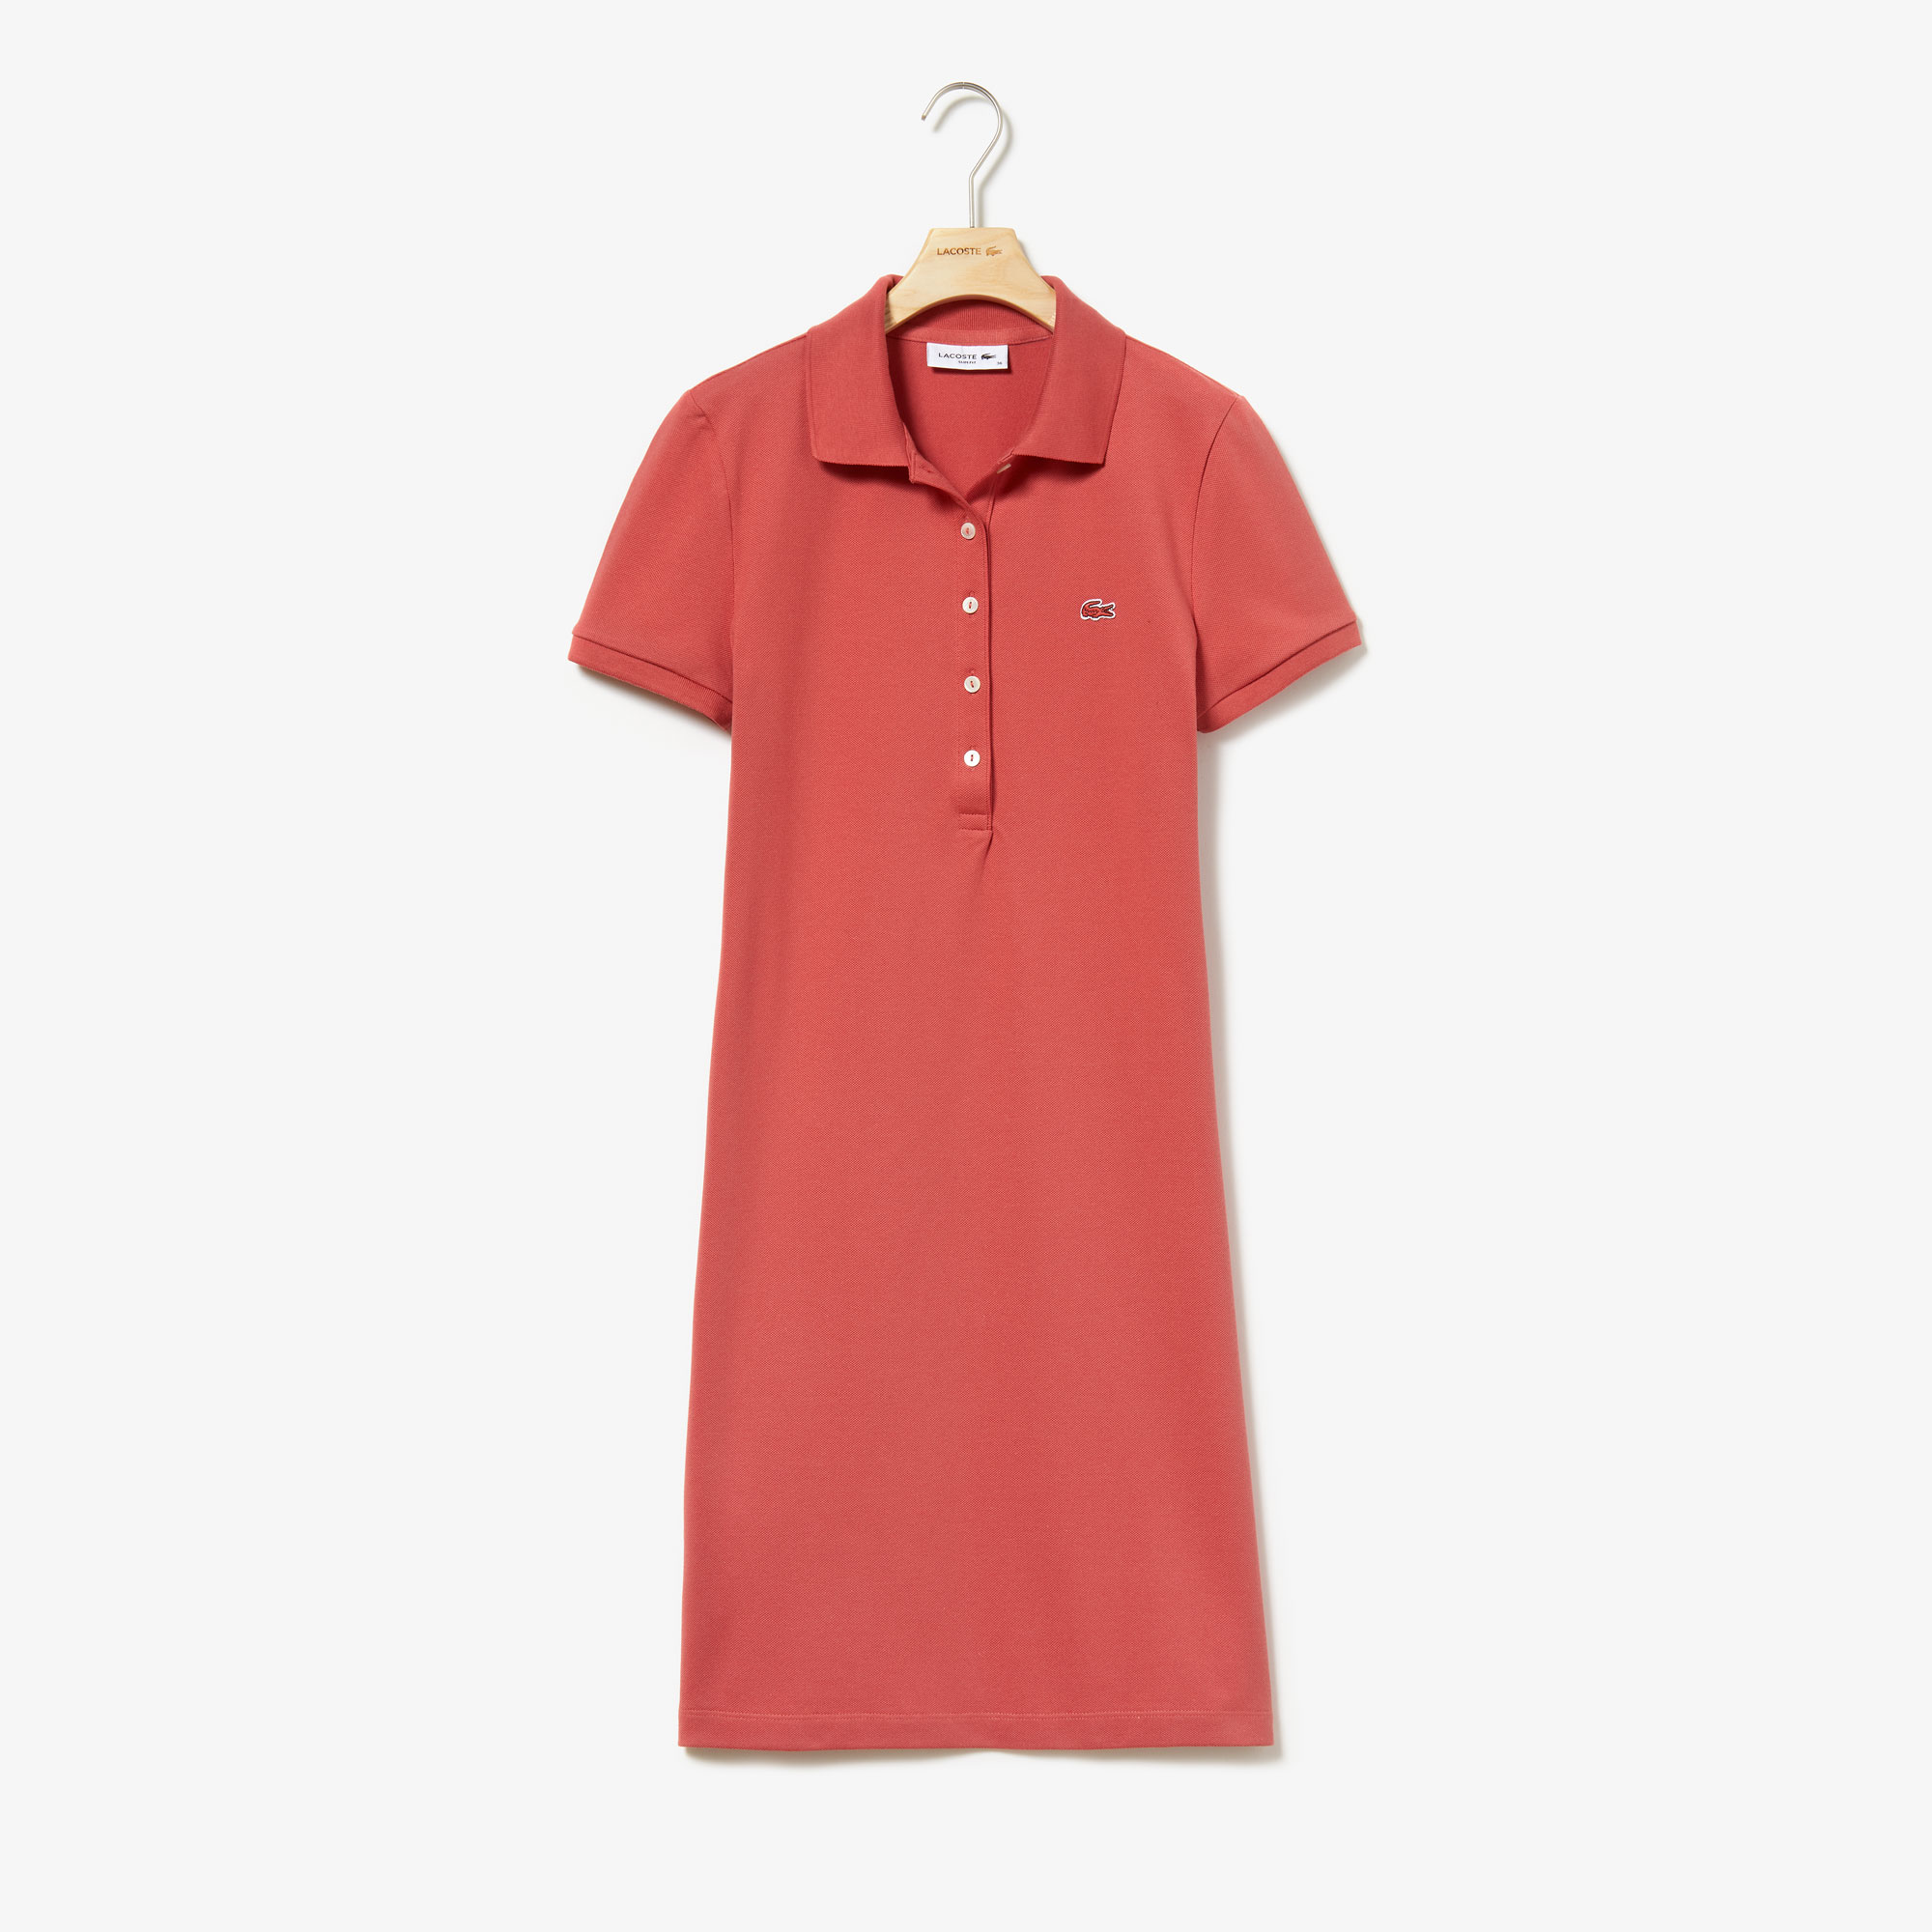 Robe polo en mini piqué de coton stretch uni